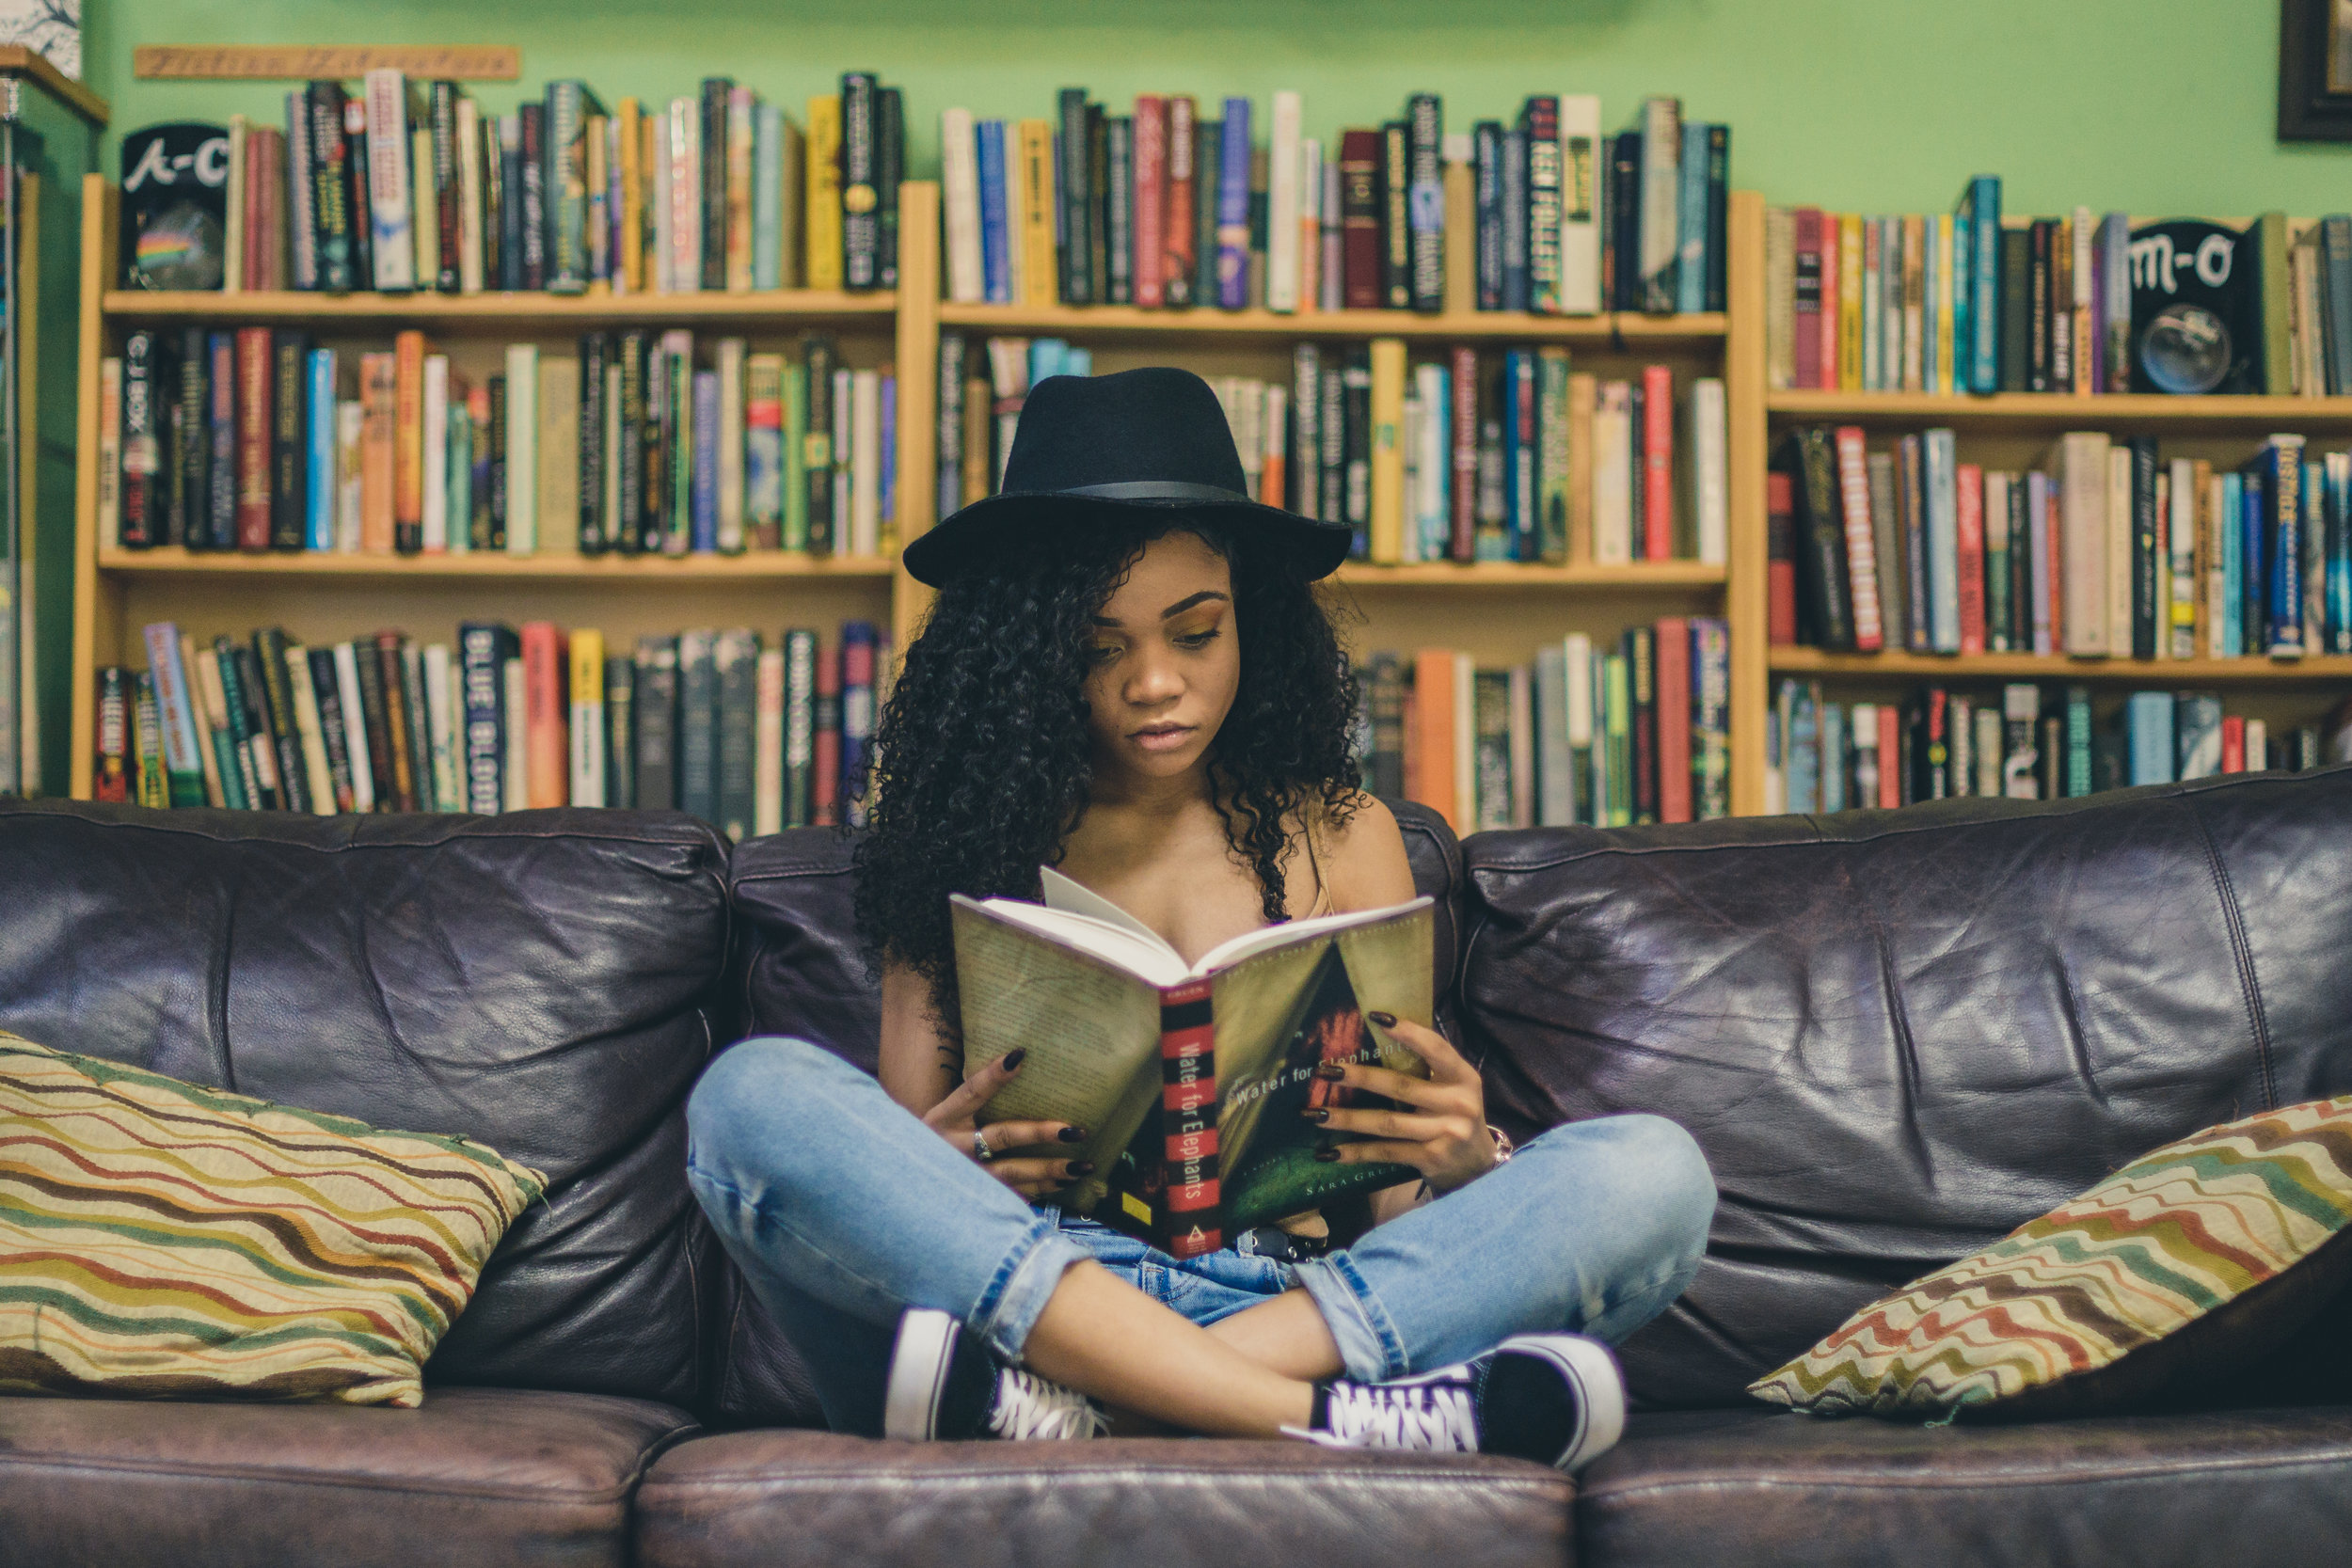 WERK Library - Enjoy free Tips, Tricks & Tools in our werk library that will help you elevate your mind: Spiritually, Physically and Mentally.